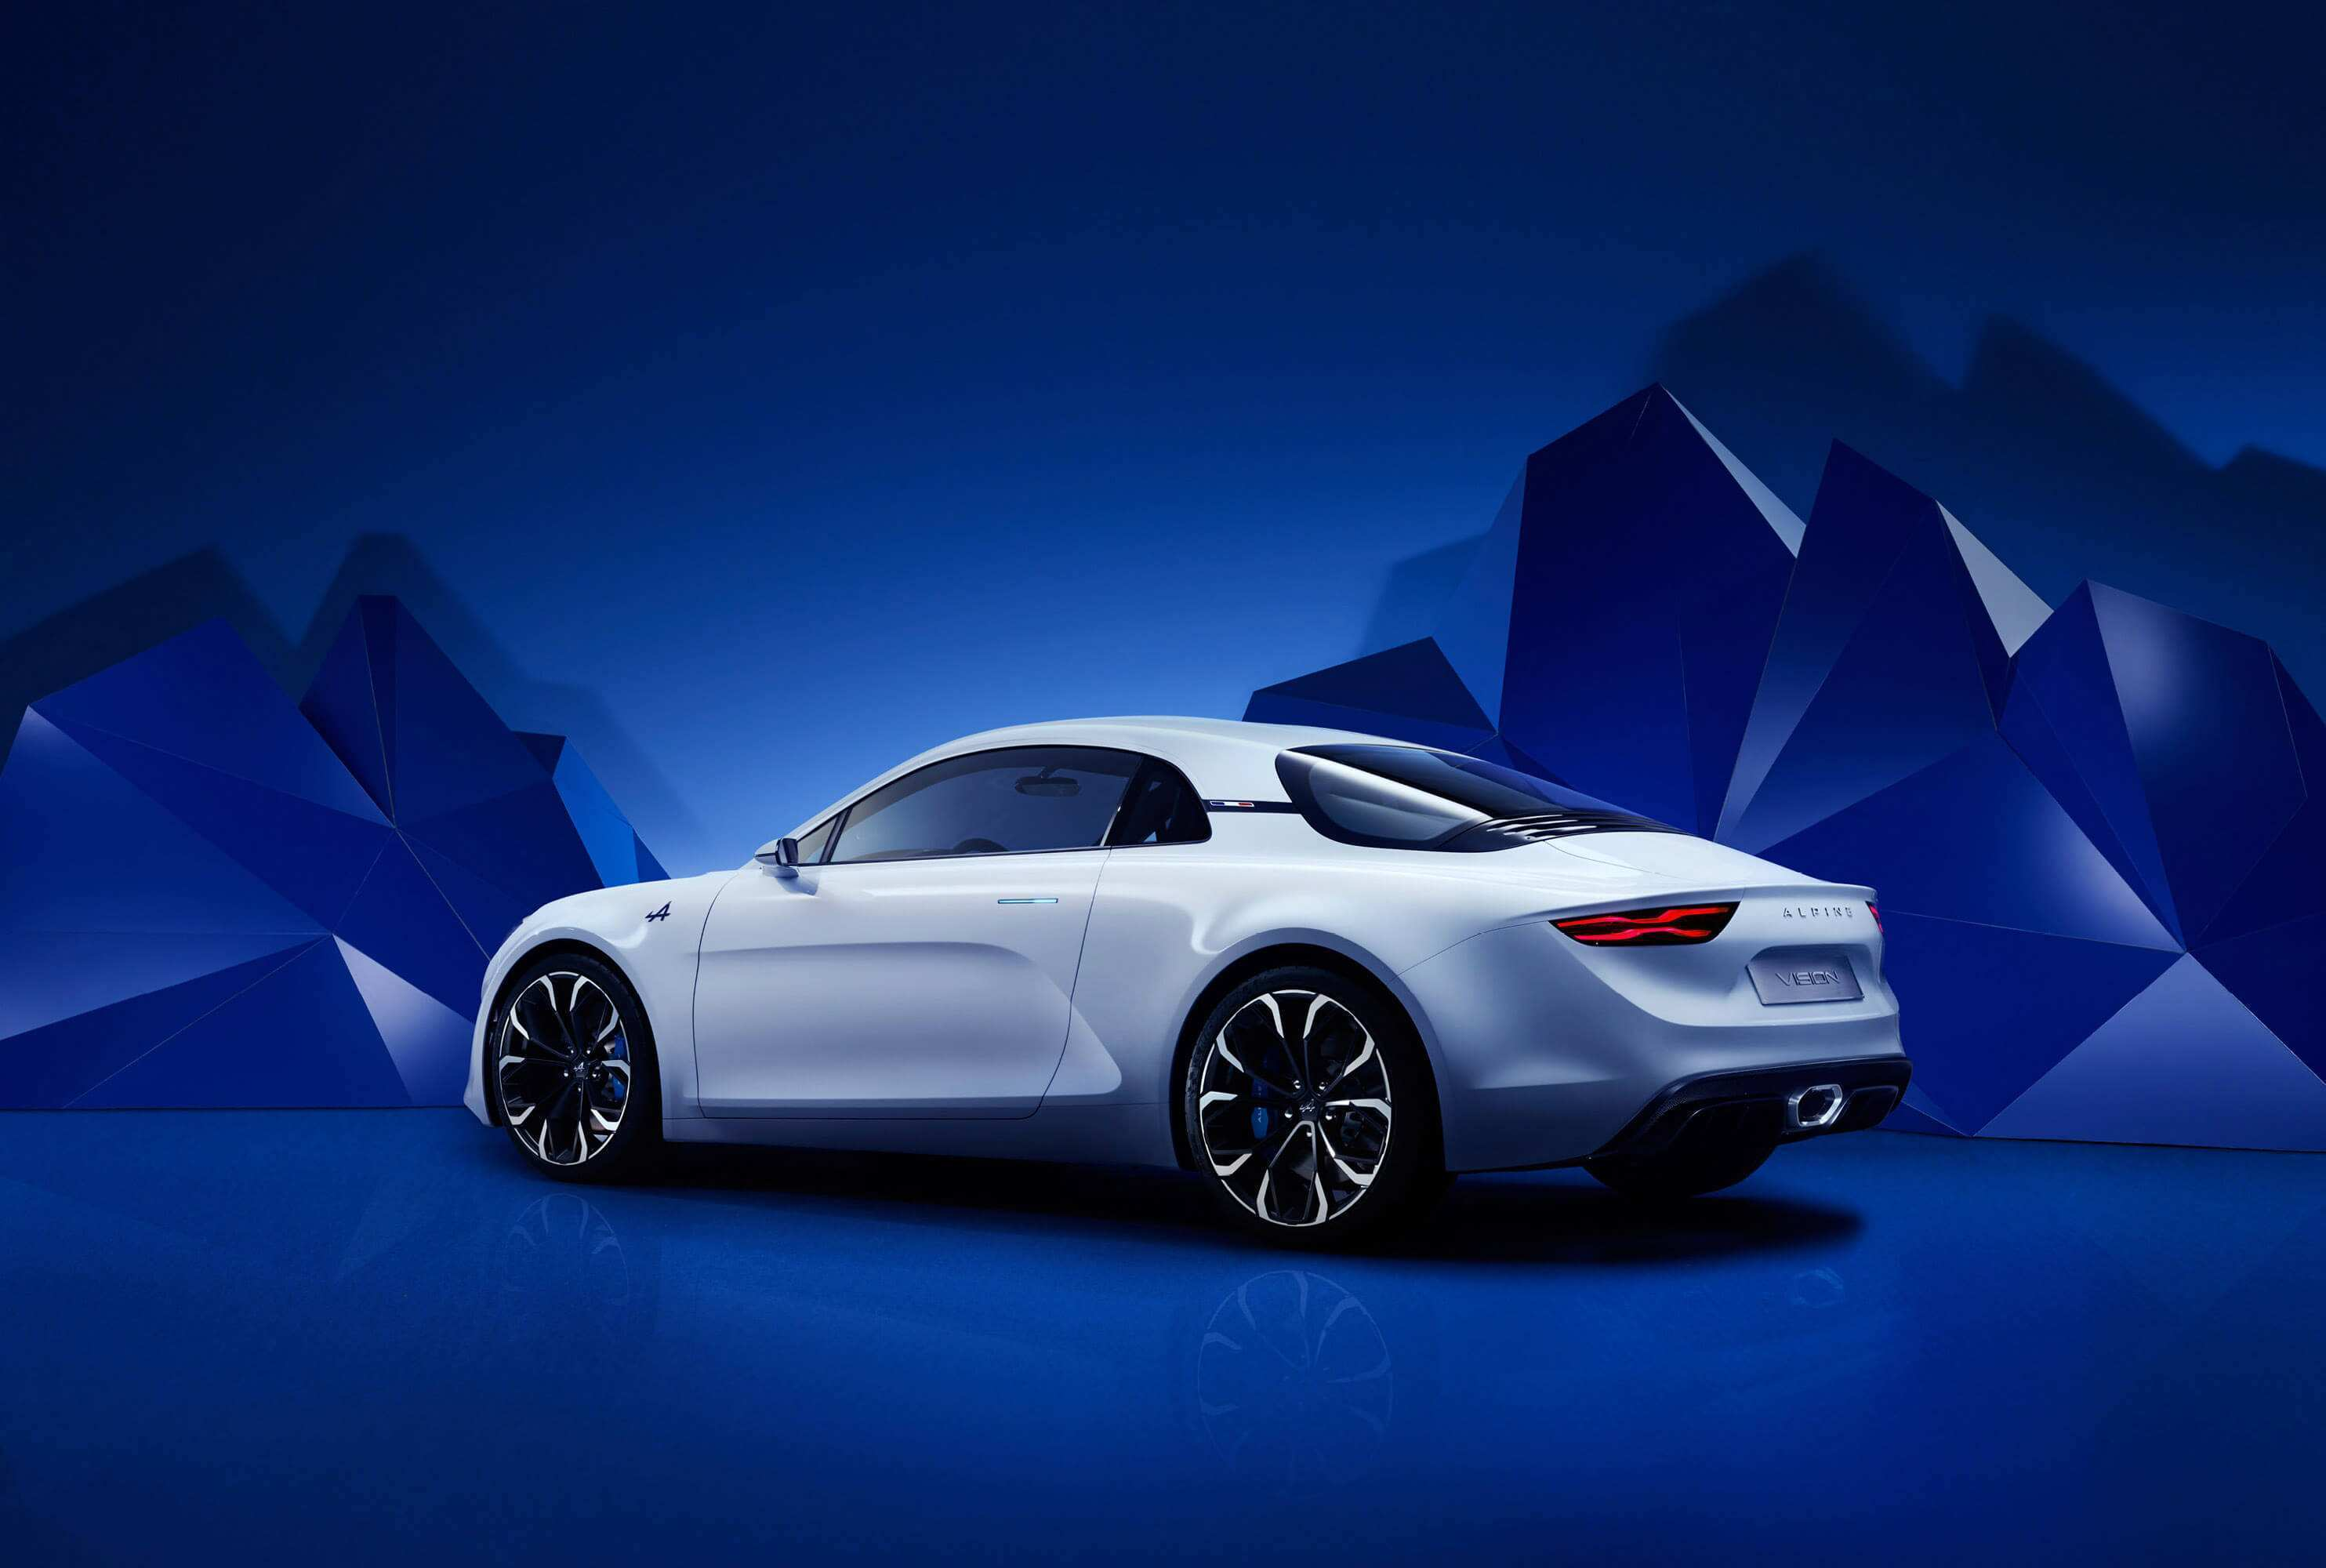 71 Best Review Renault Alpine 2019 Concept for Renault Alpine 2019